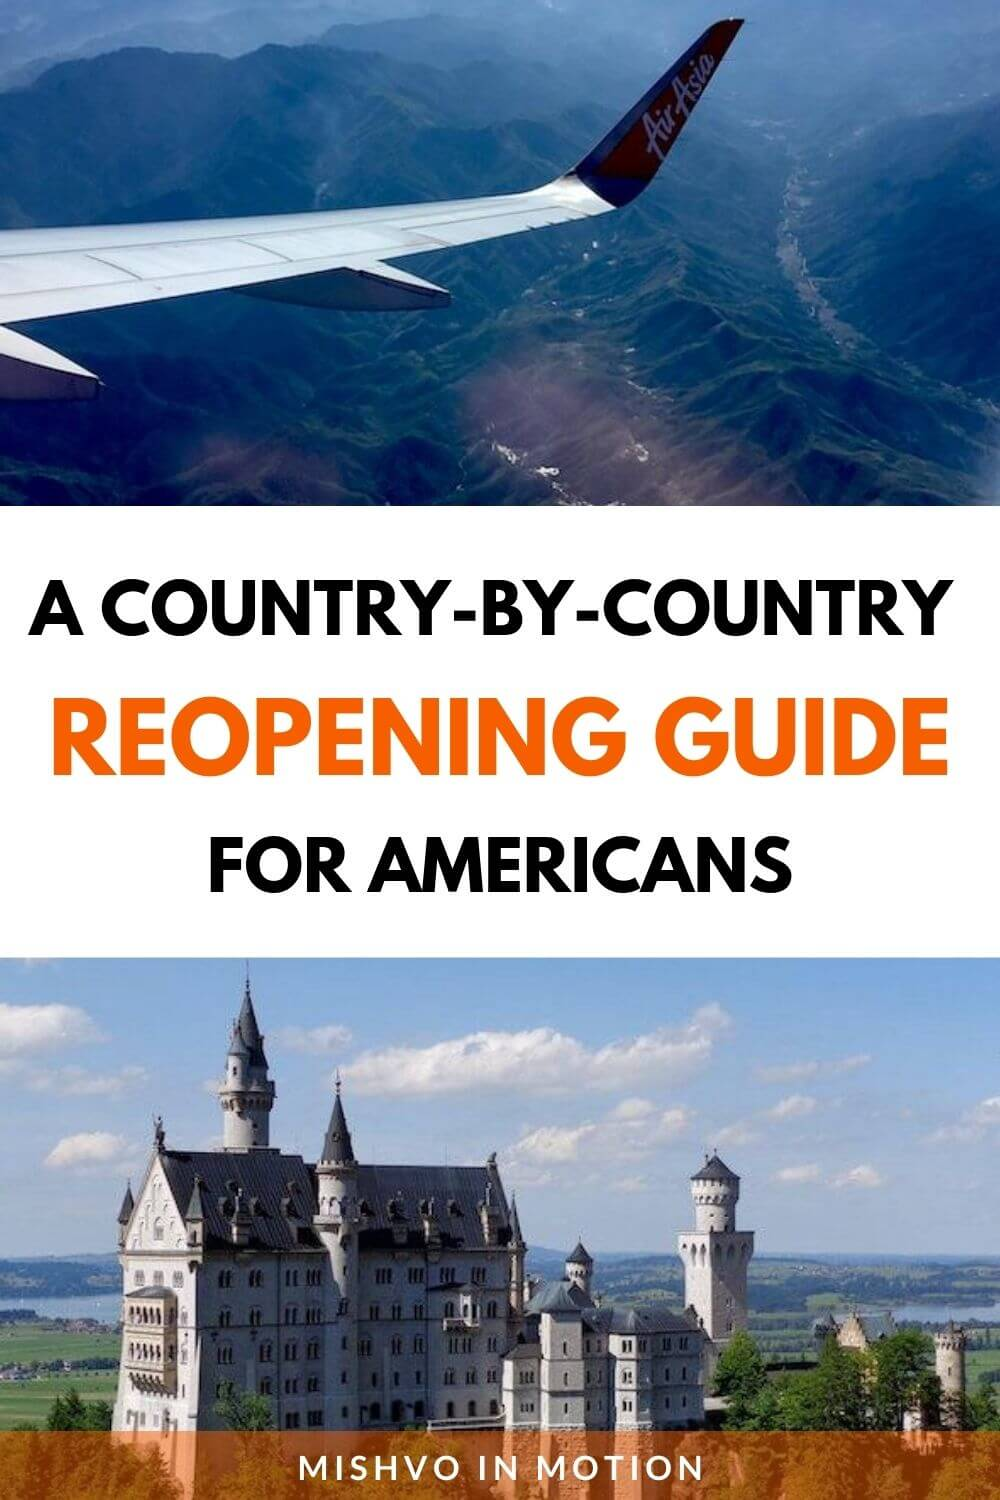 A Country-by-Country Reopening Guide for Americans